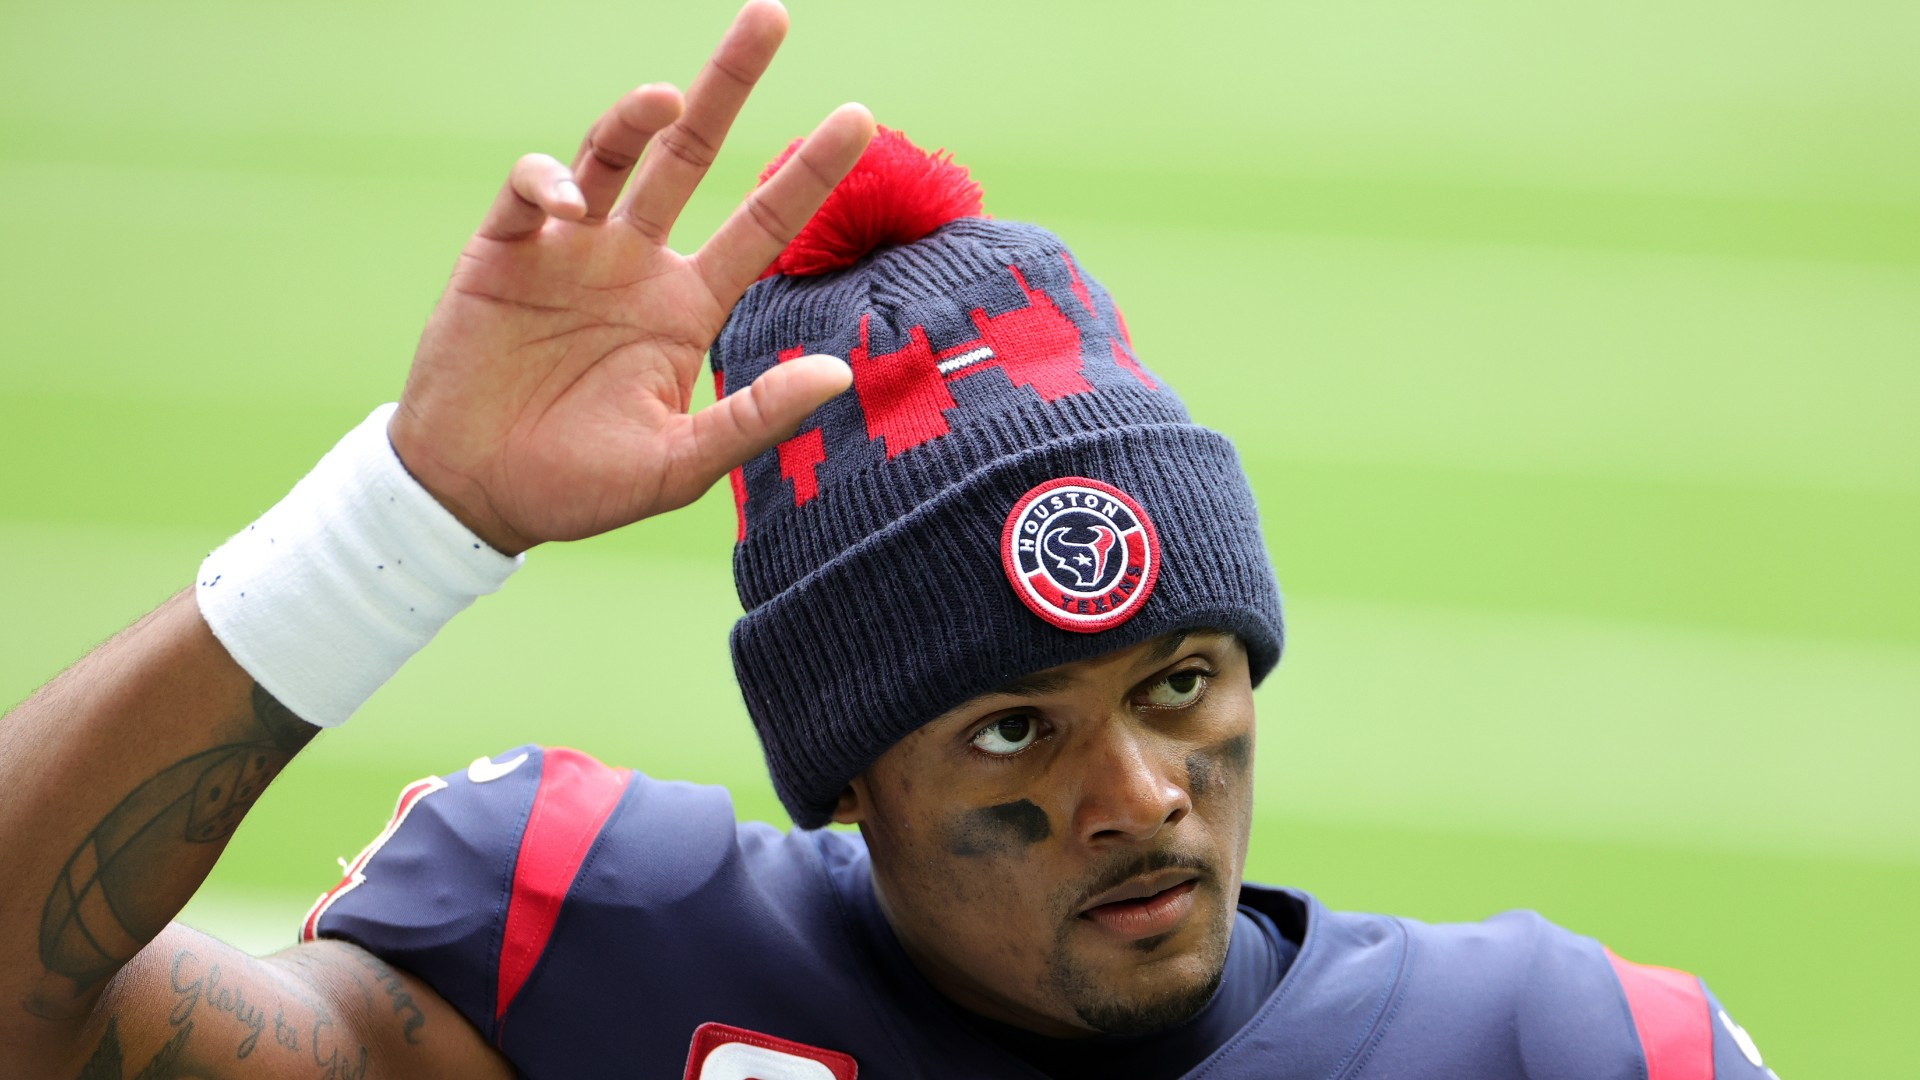 Deshaun Watson trade rumors: NFL teams leave trade offers on voicemail with Texans 'unwilling' to discuss deals